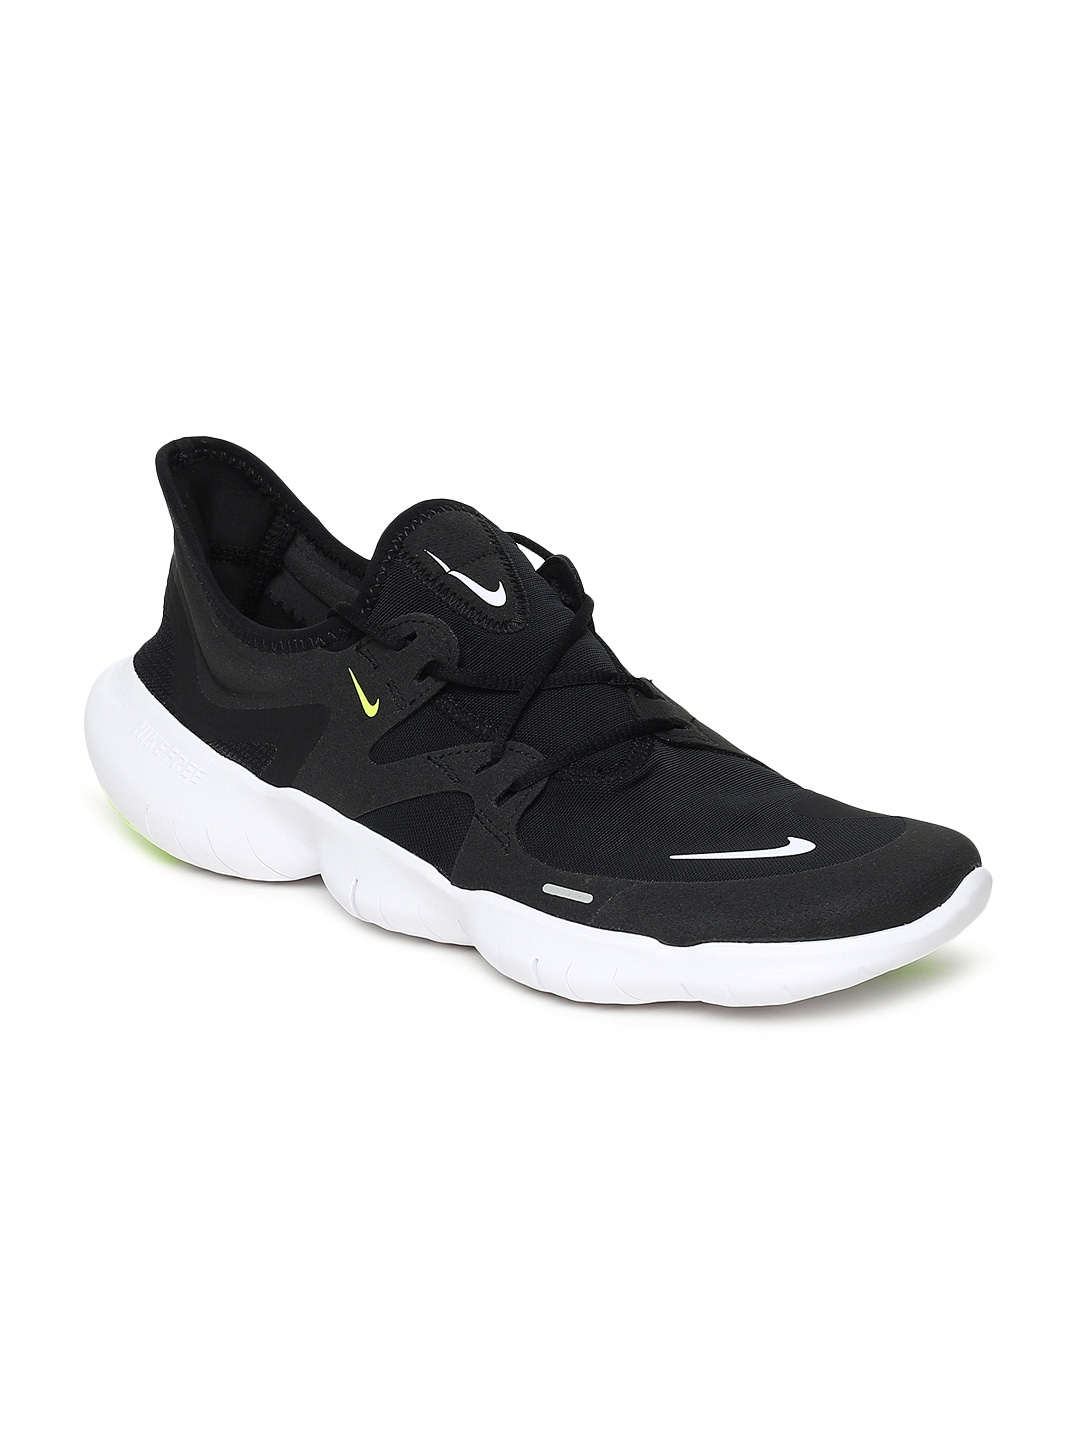 new style 99138 2d934 Nike Black Shoes - Buy Nike Black Shoes Online in India